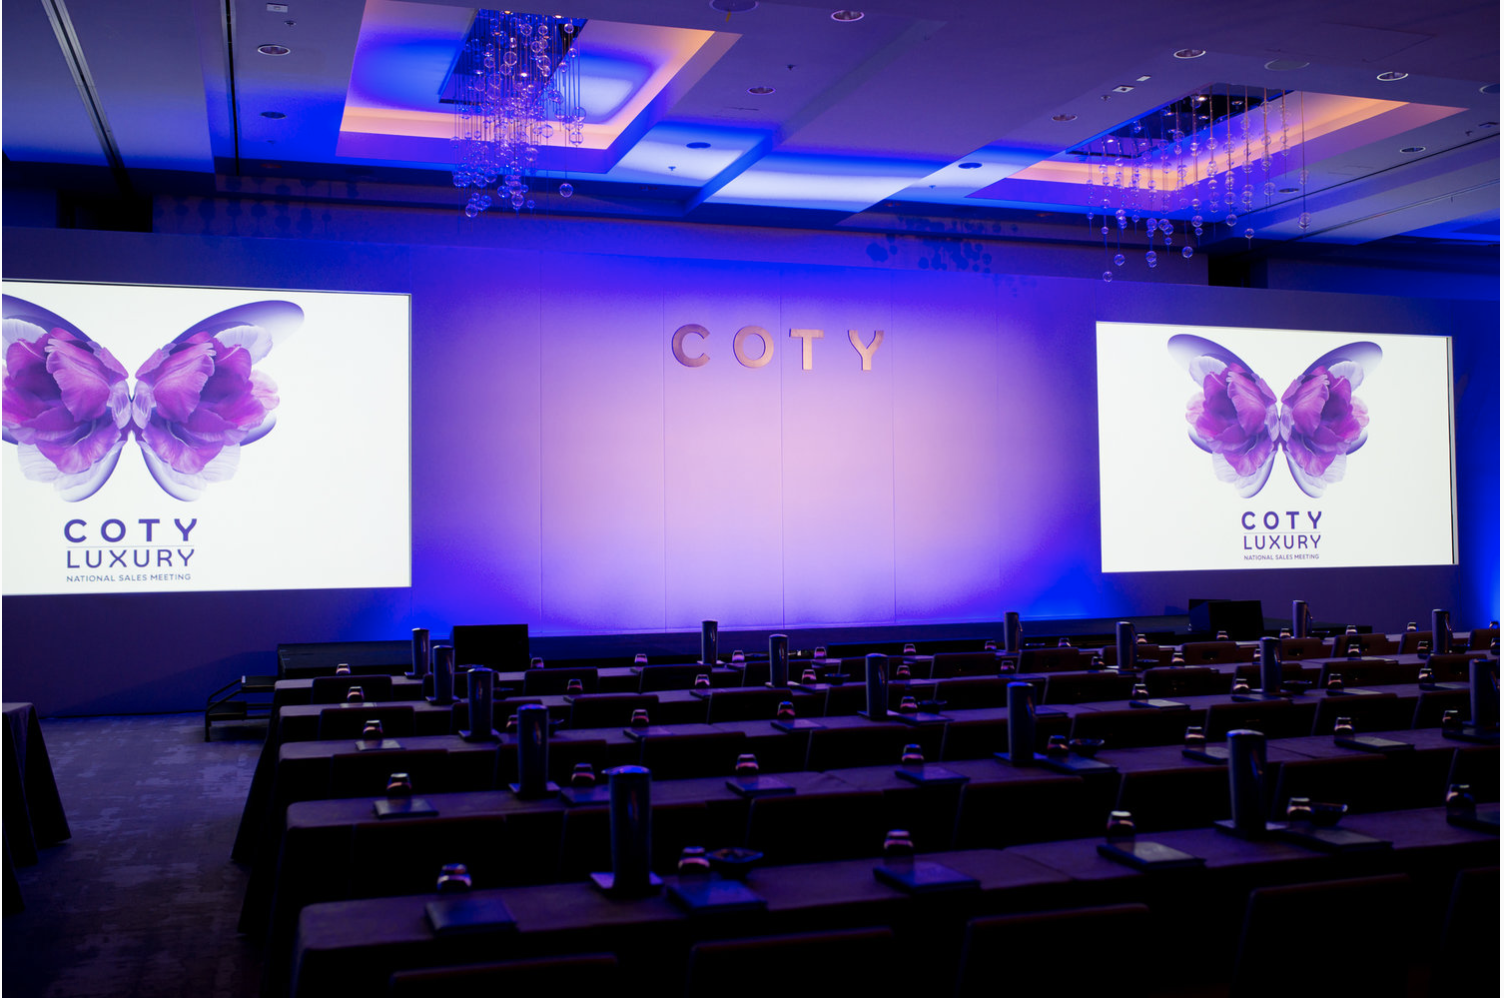 COTY - LDJ has partnered with COTY beauty division on their National Sales Meetings since 2013. LDJ manages all aspects of the event including venue selection, registration, guest experience and overall technical production of the main stage and breakouts.